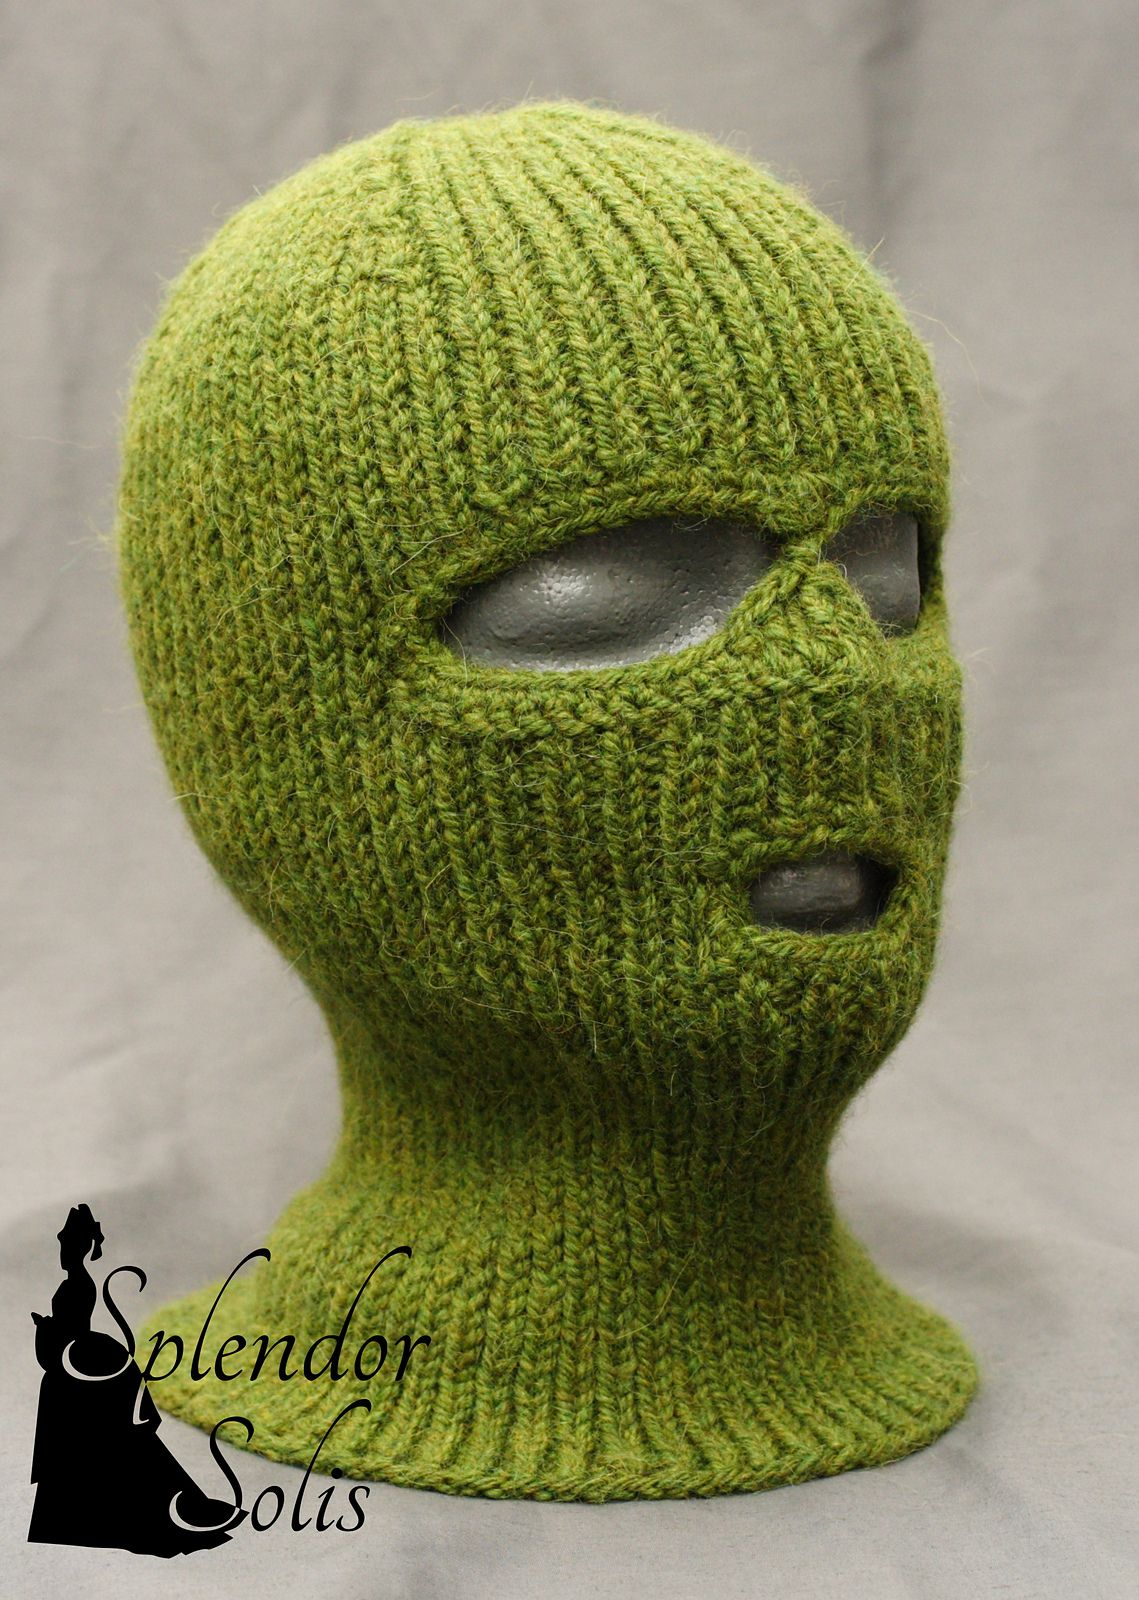 Balaclava pattern by Splendor Solis | Balaclava, Ravelry and Pattern ...